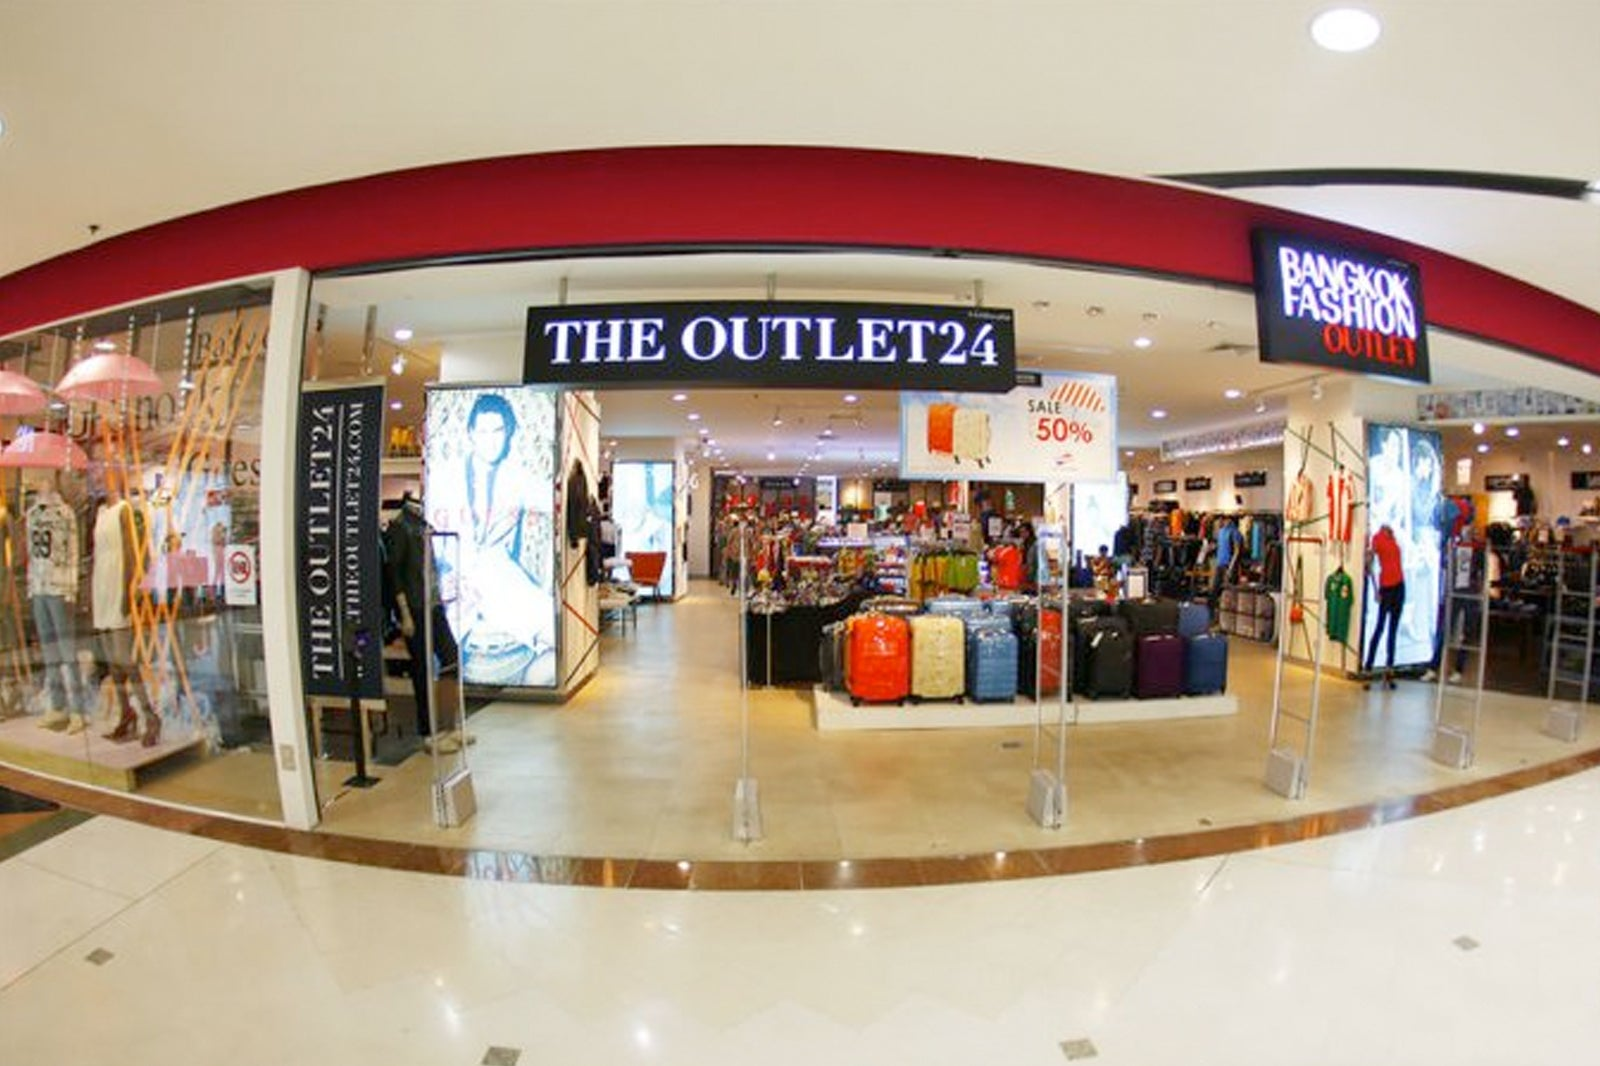 habla entidad Templado  4 Best Outlet Stores at Bangkok Fashion Outlet - Where to Shop for Fashion  at the Jewelry Trade Center Mall